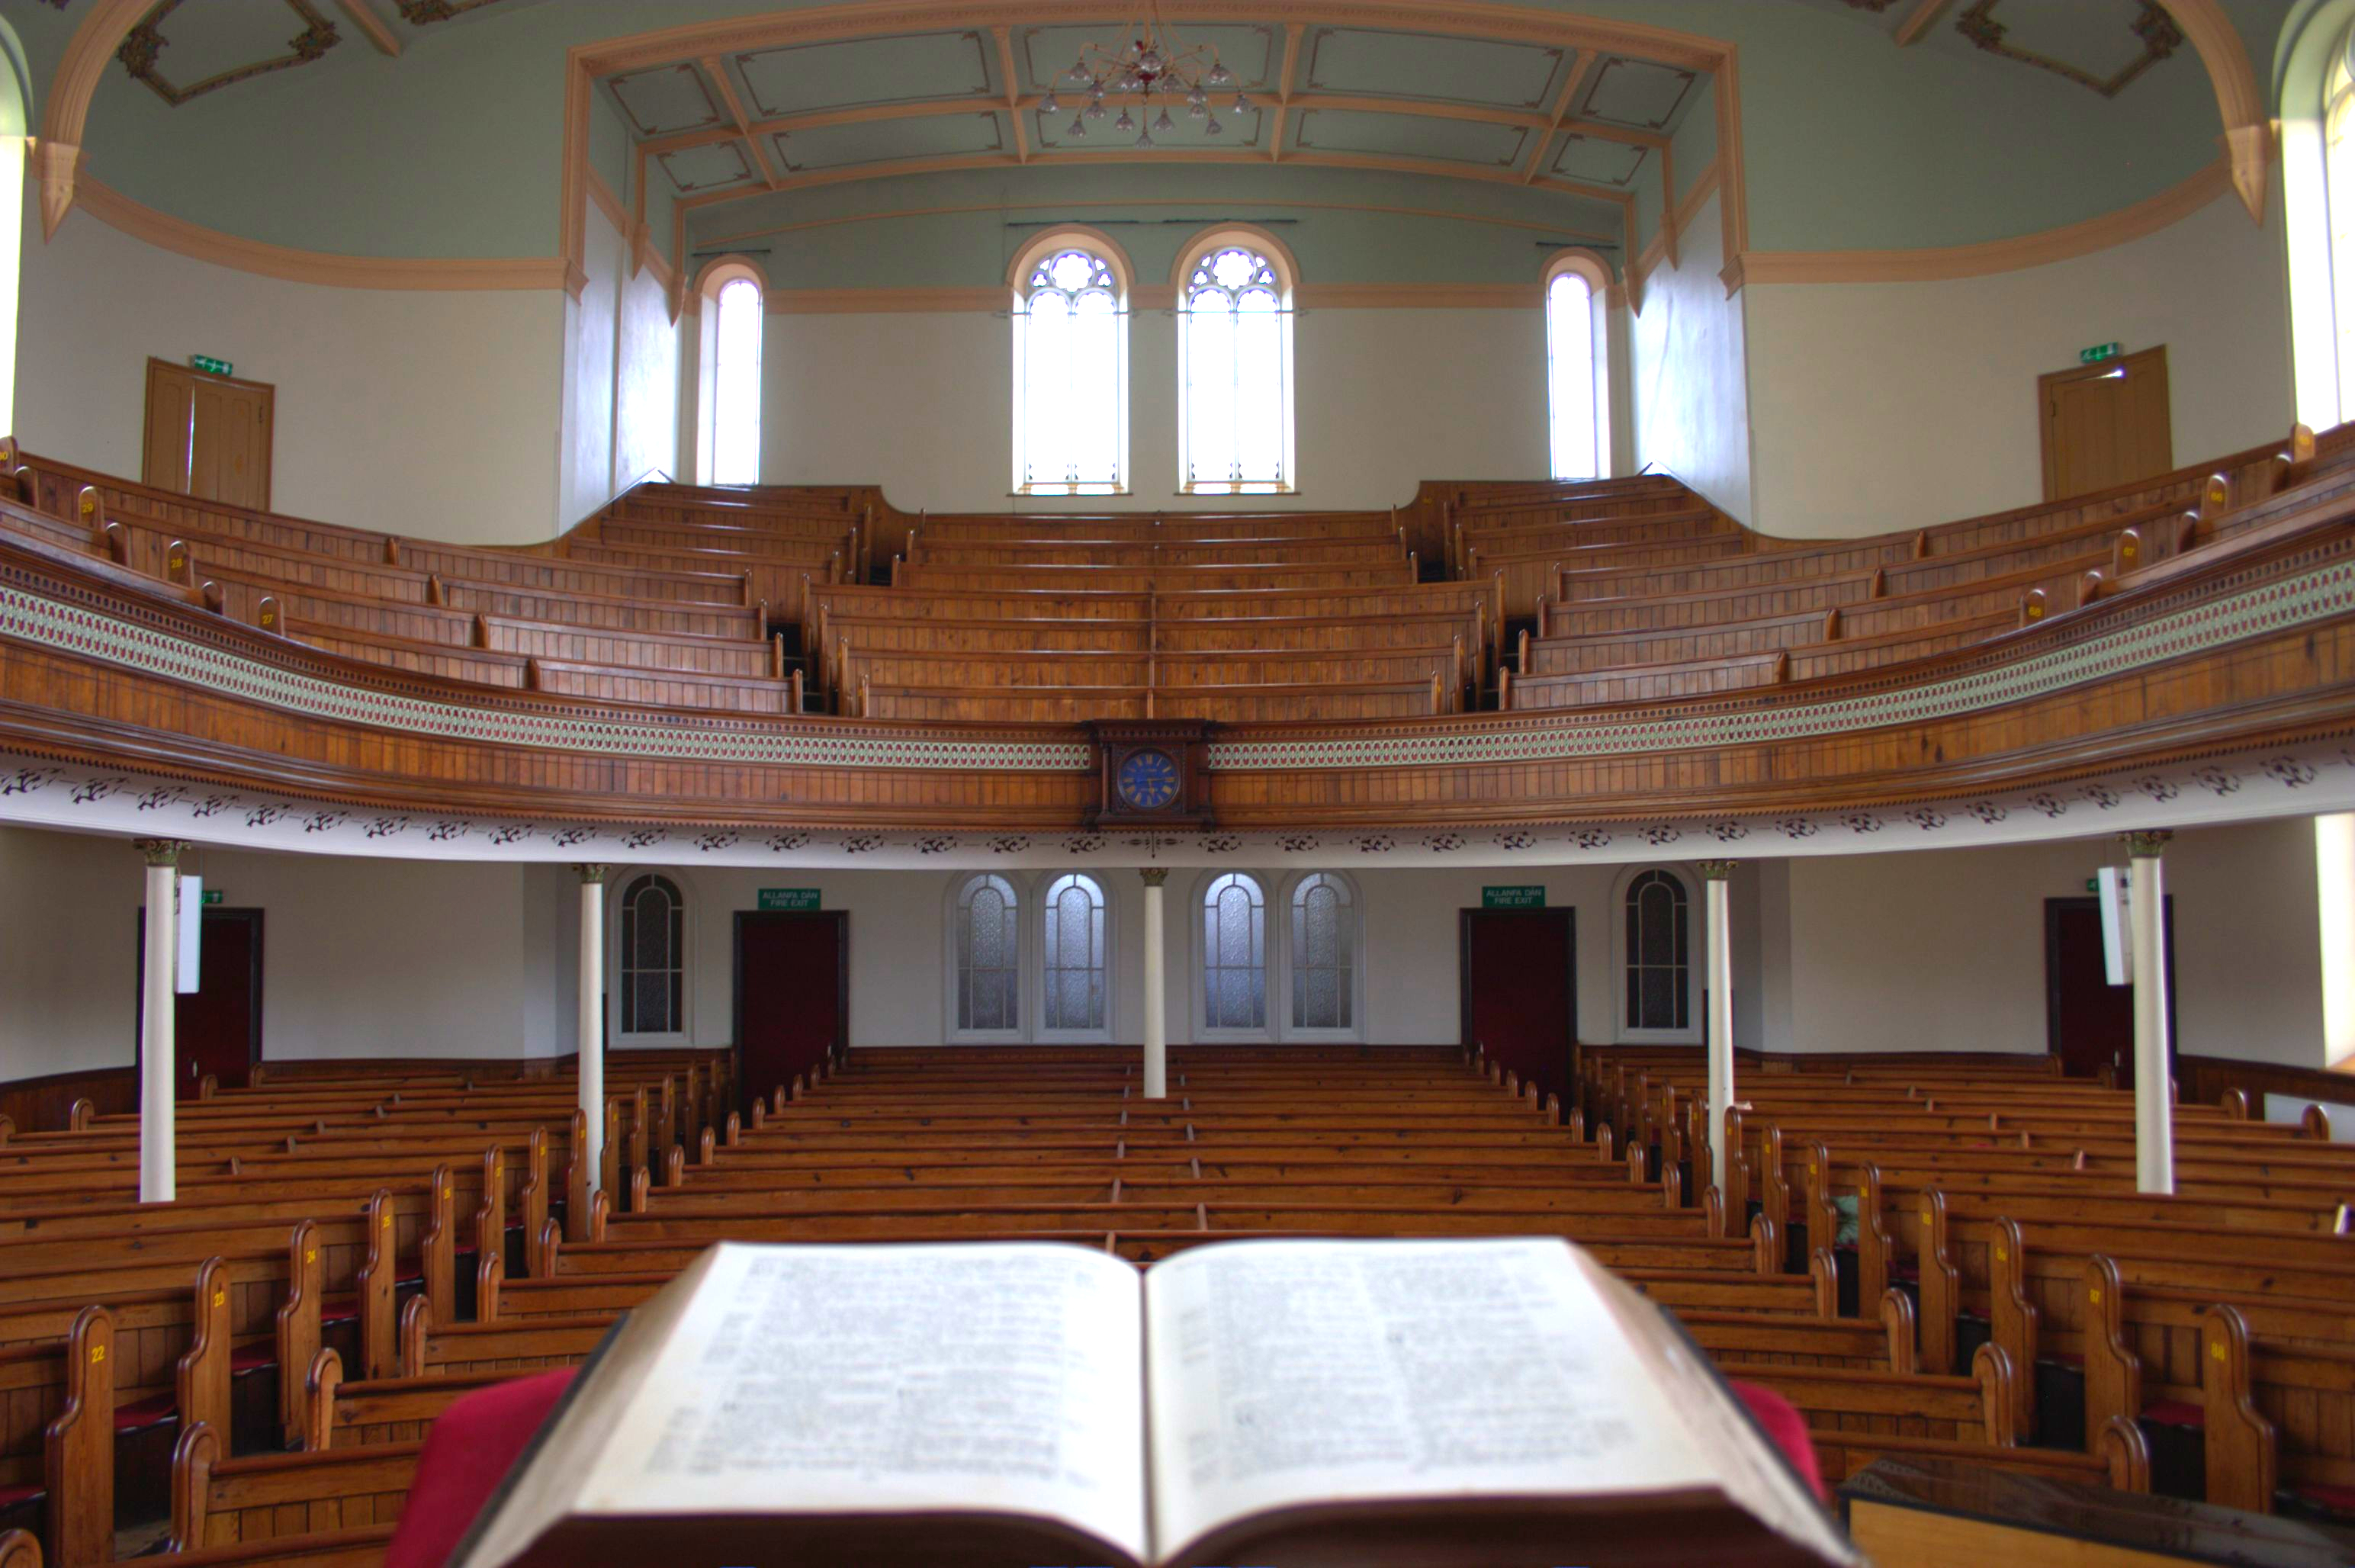 MORRISTON Tabernacle Chapel interior